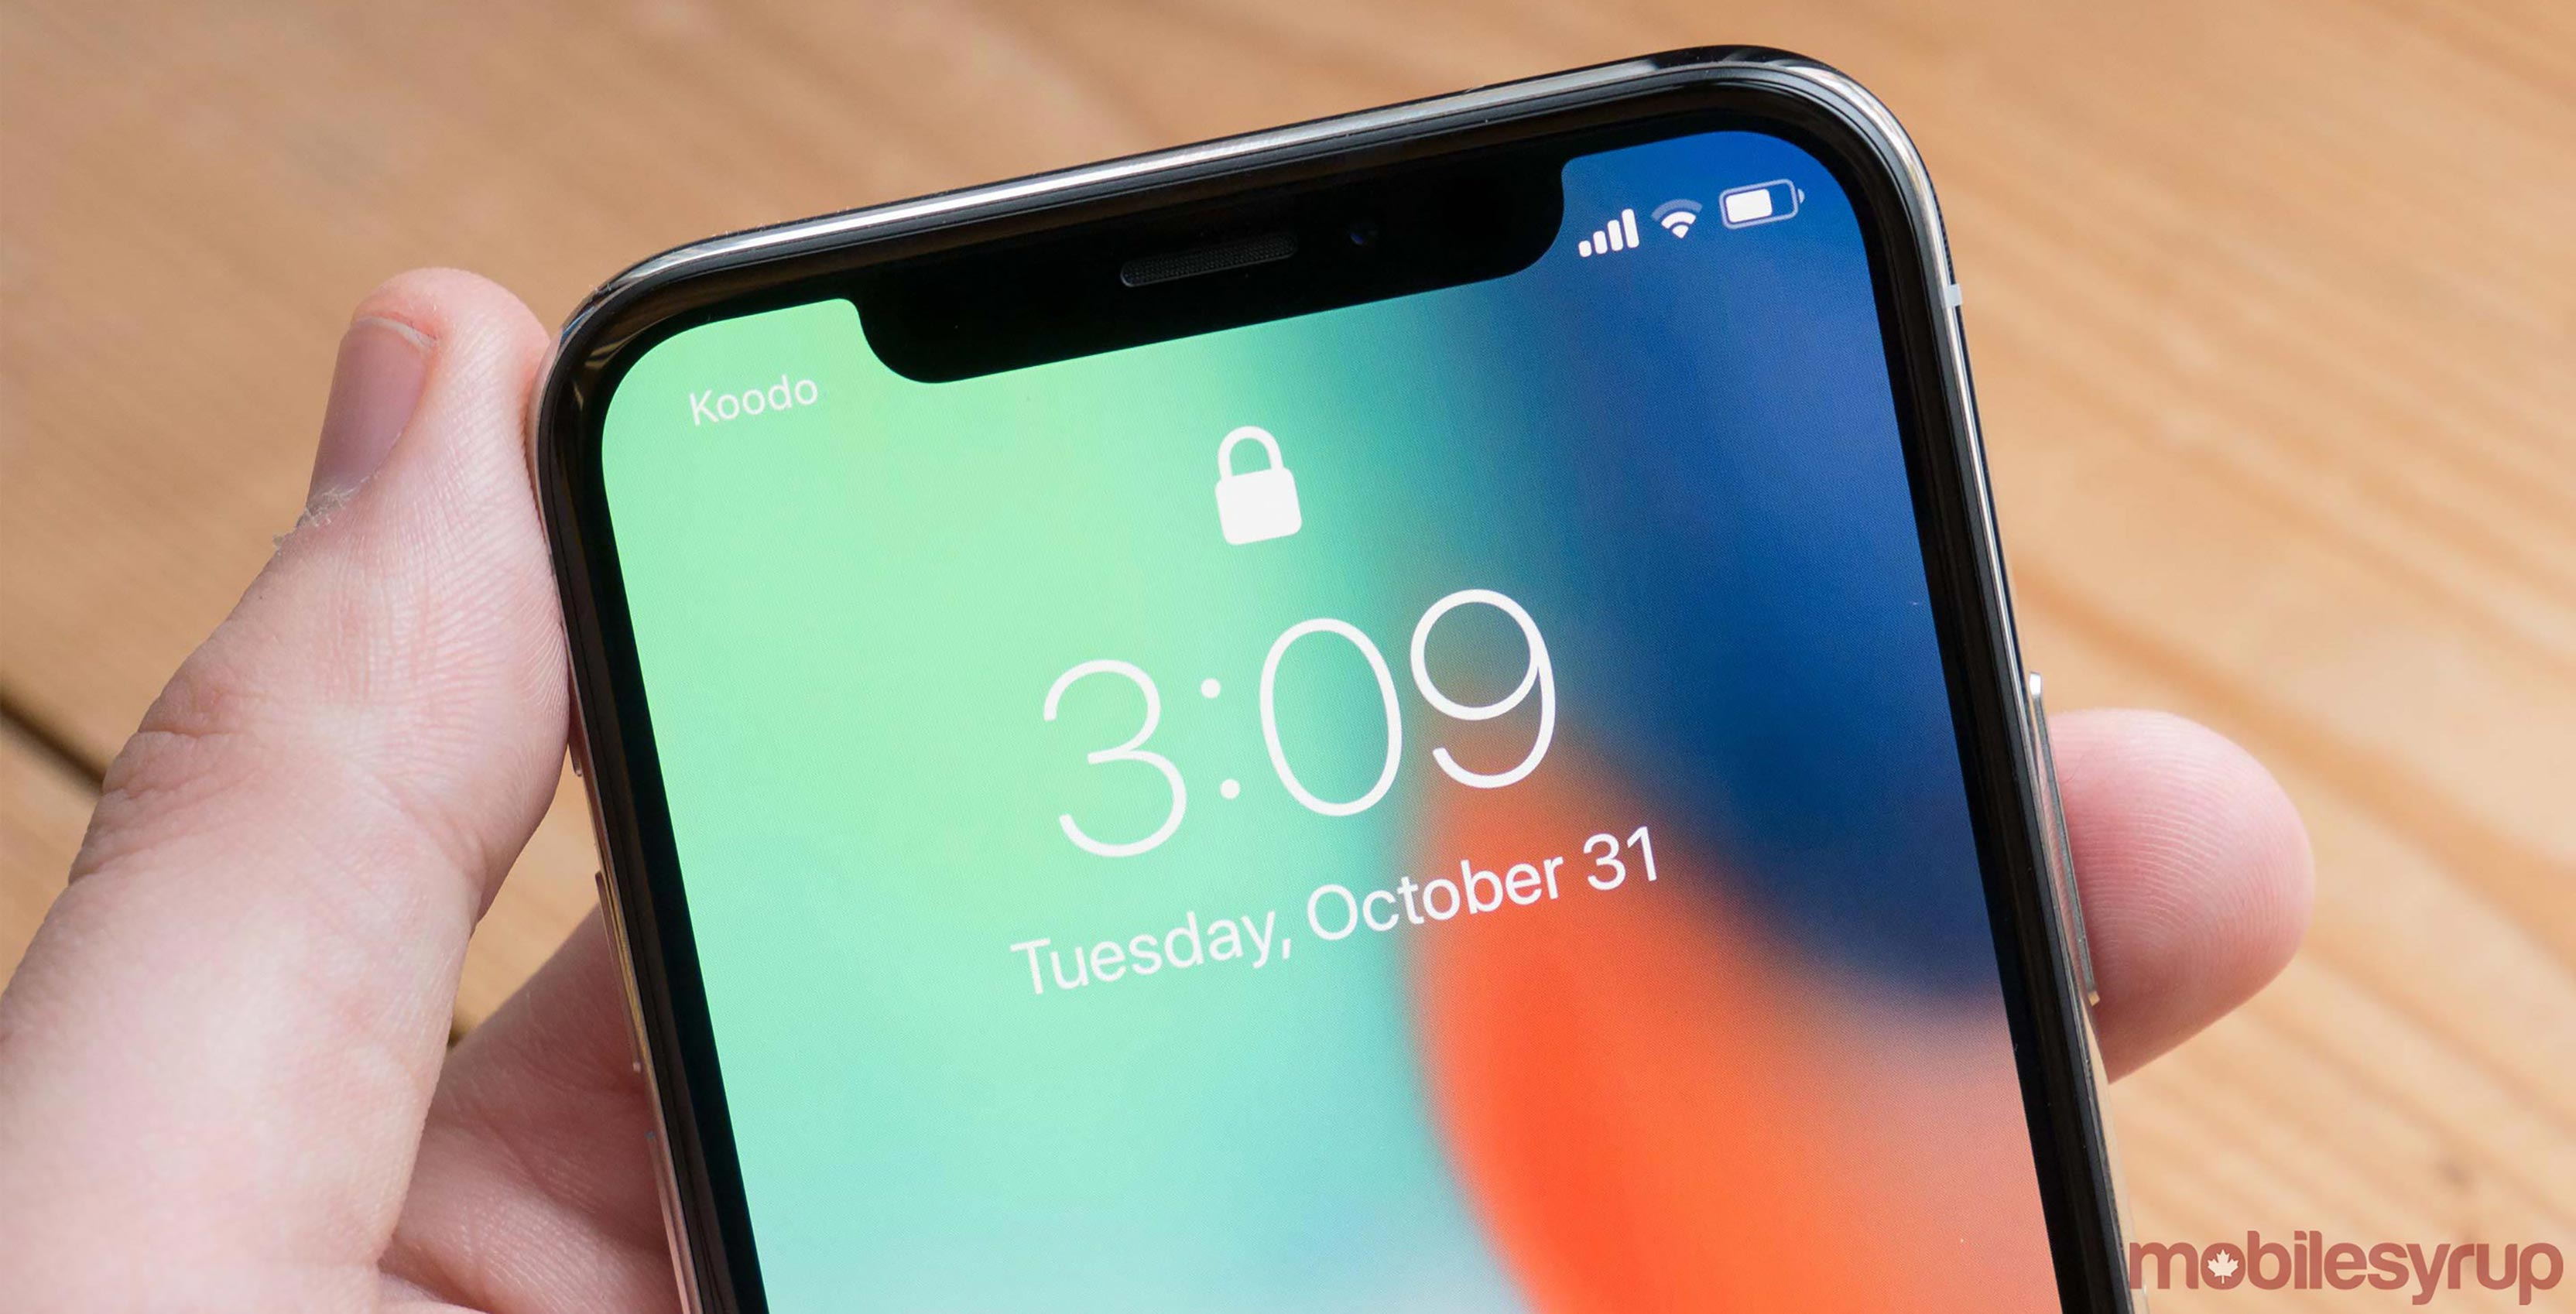 IPhone X pocketed 35% of total handset industry profits in Q4 2017